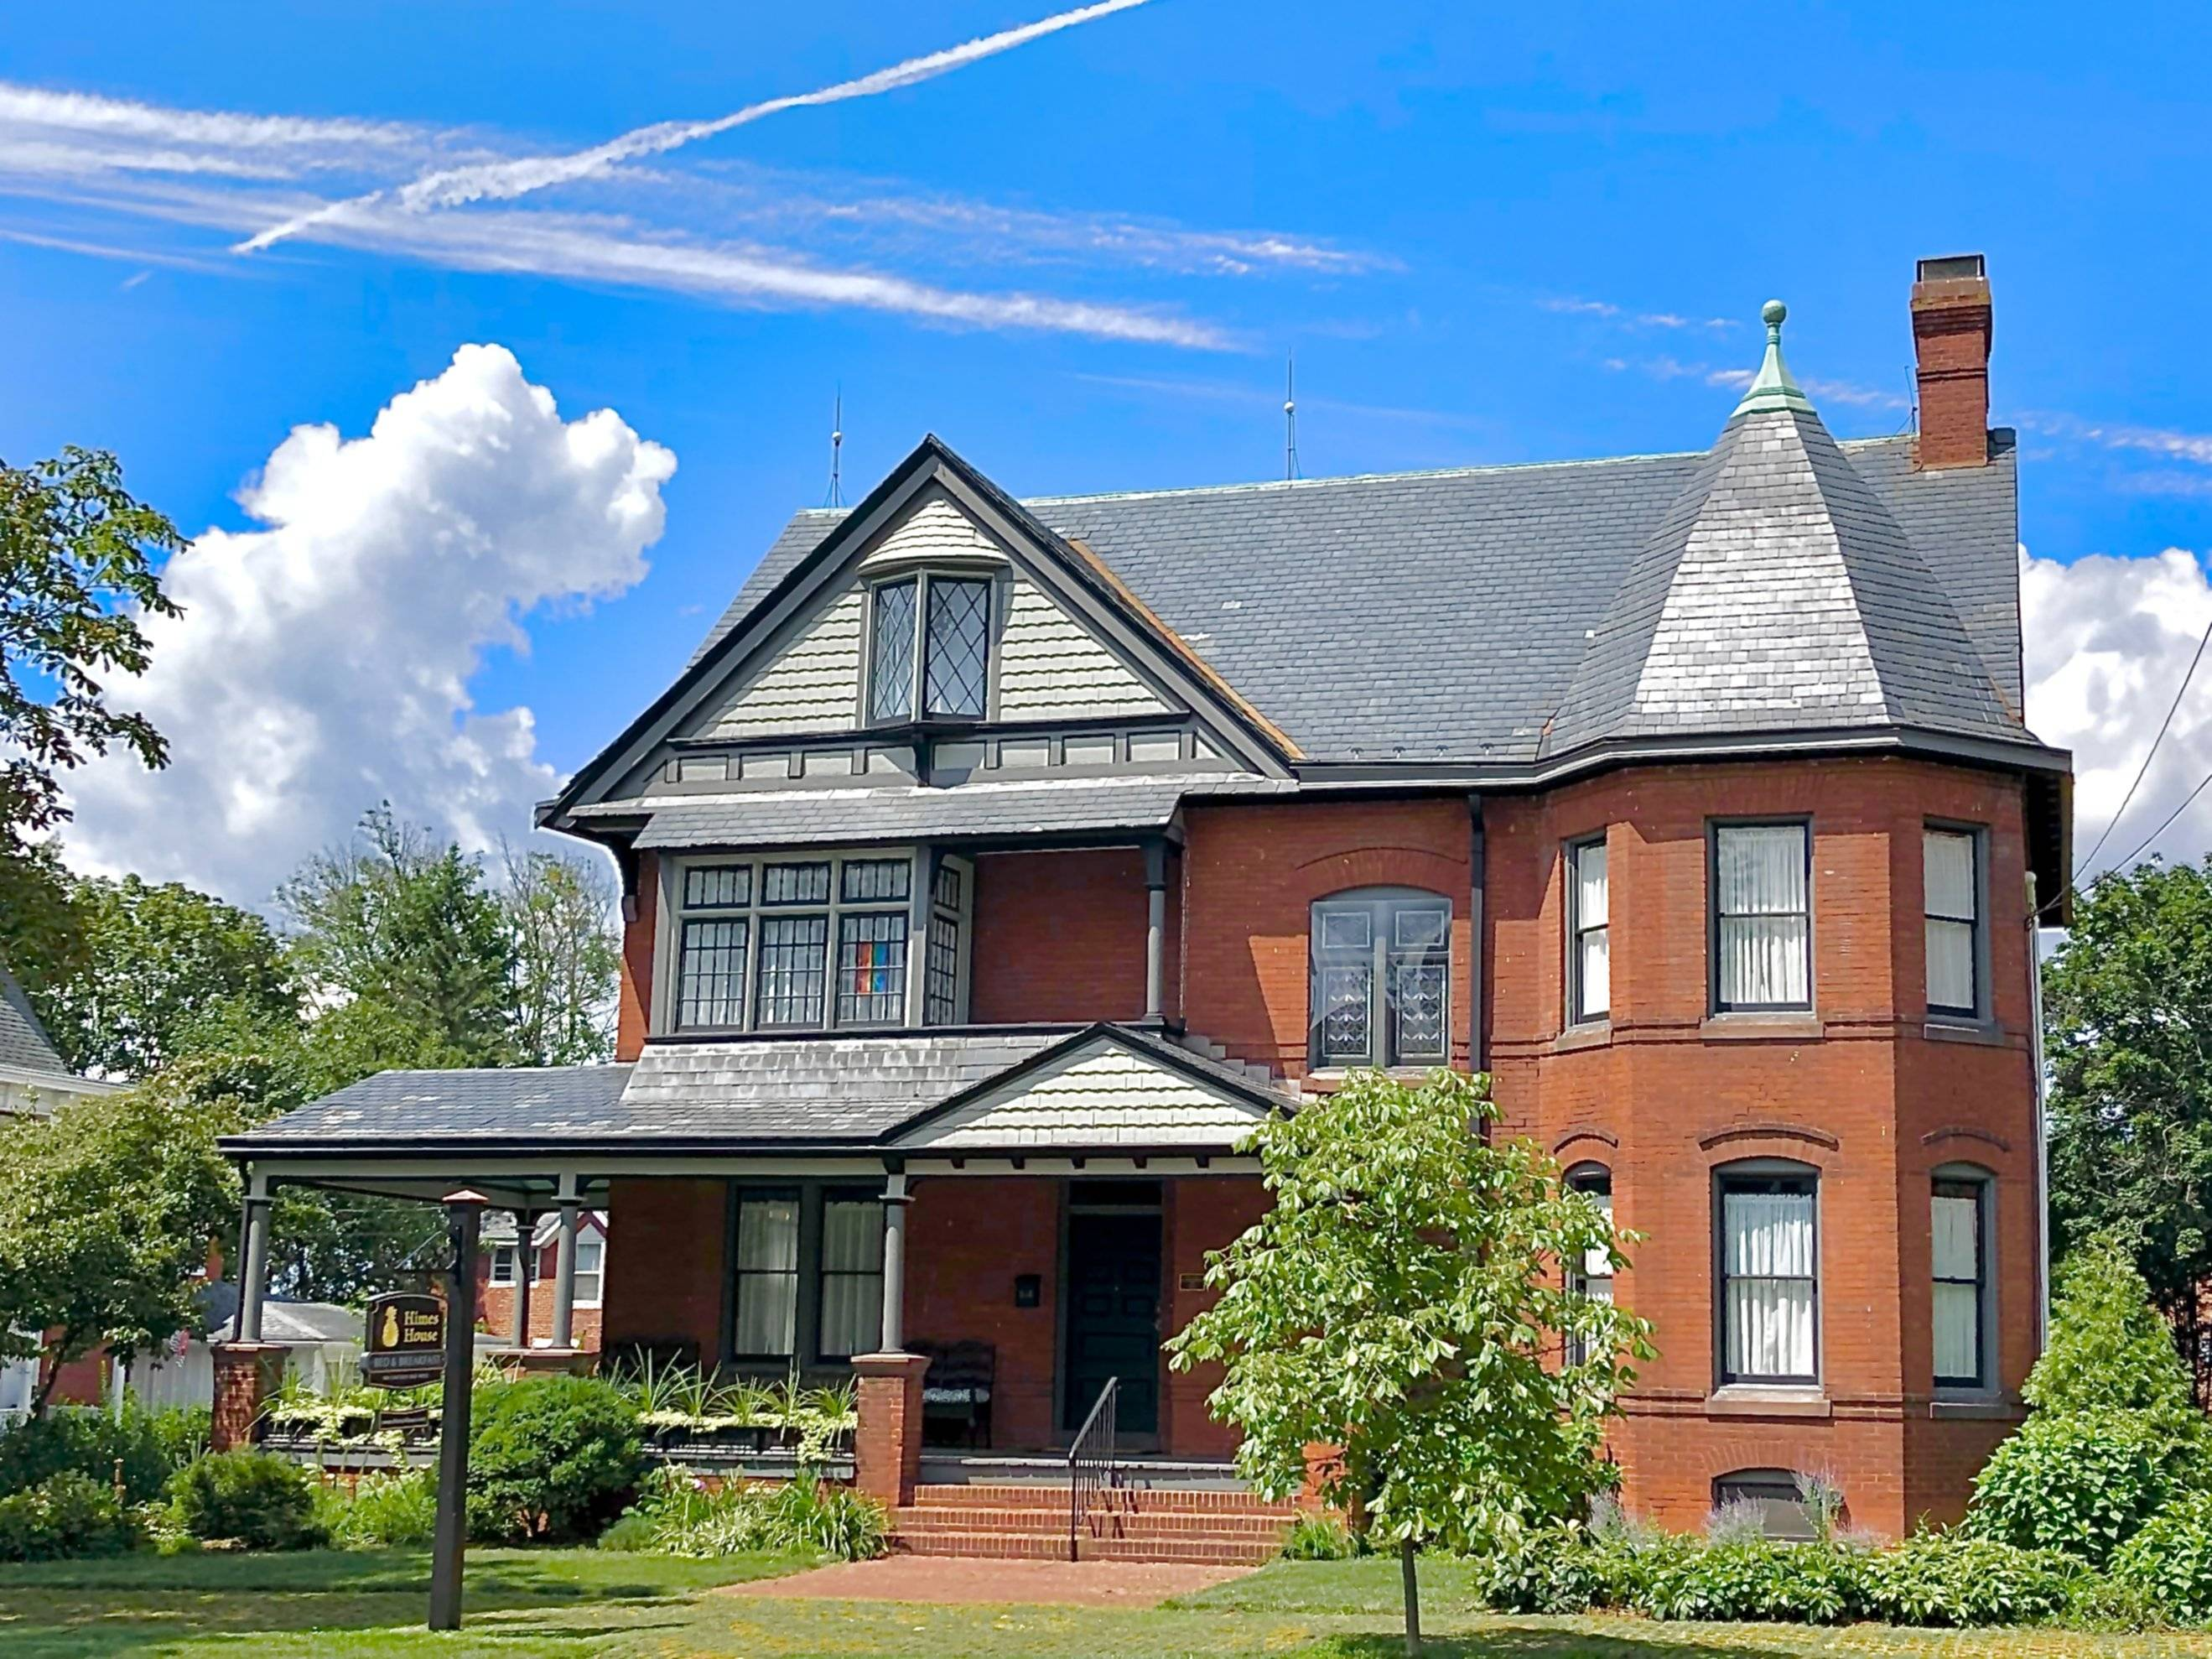 New Oxford Bed and Breakfast